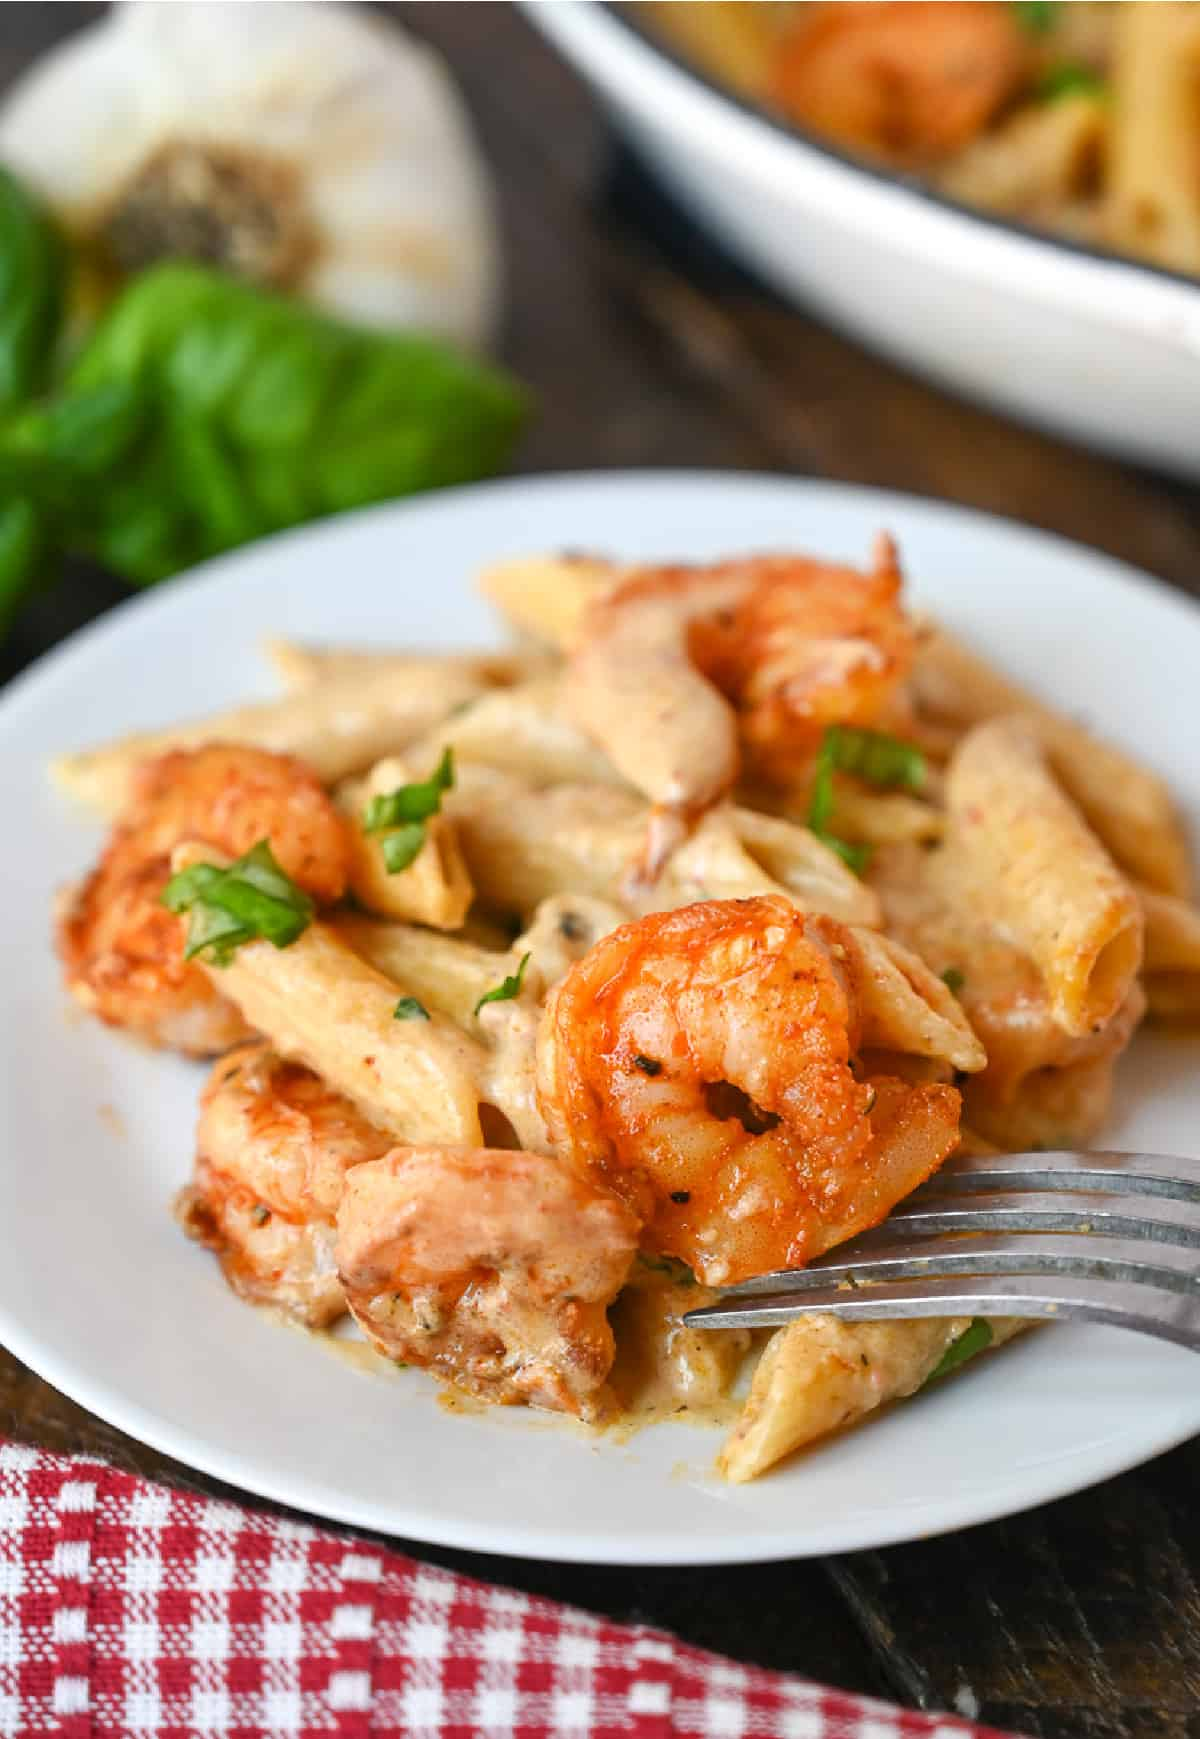 A serving of creamy garlic shrimp pasta on a white plate with a fork.